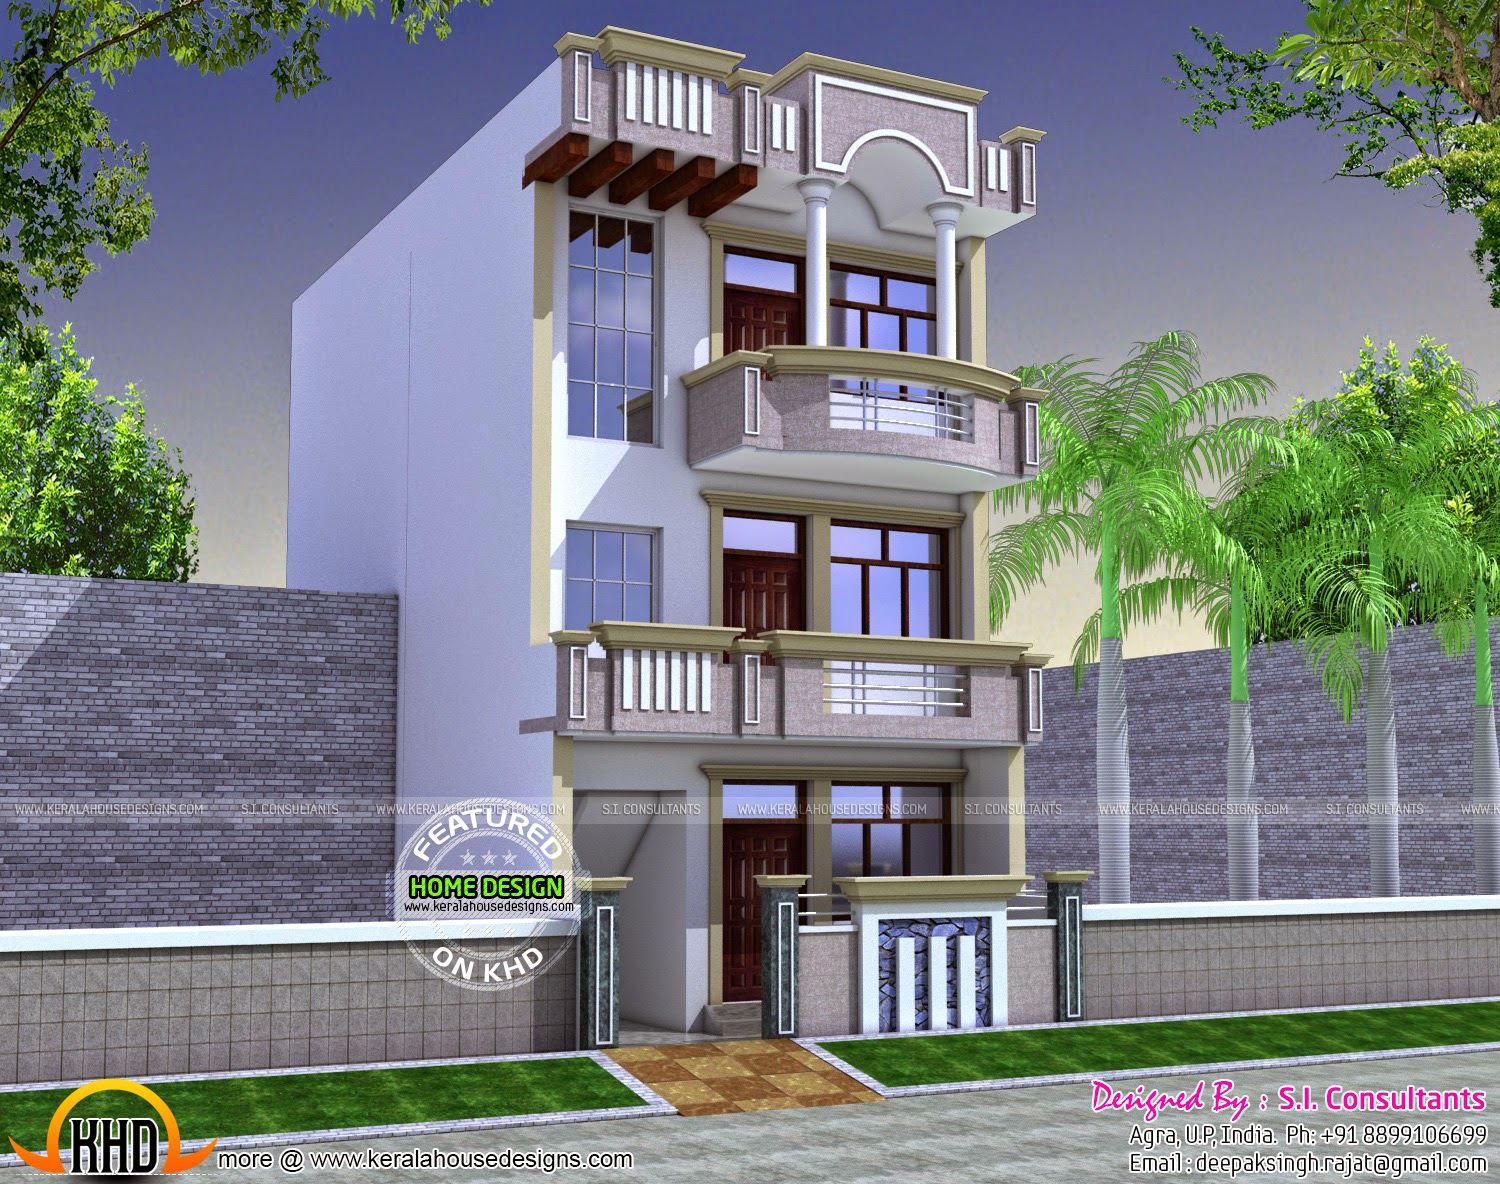 Bangalore house design keralahousedesigns for Home designs bangalore